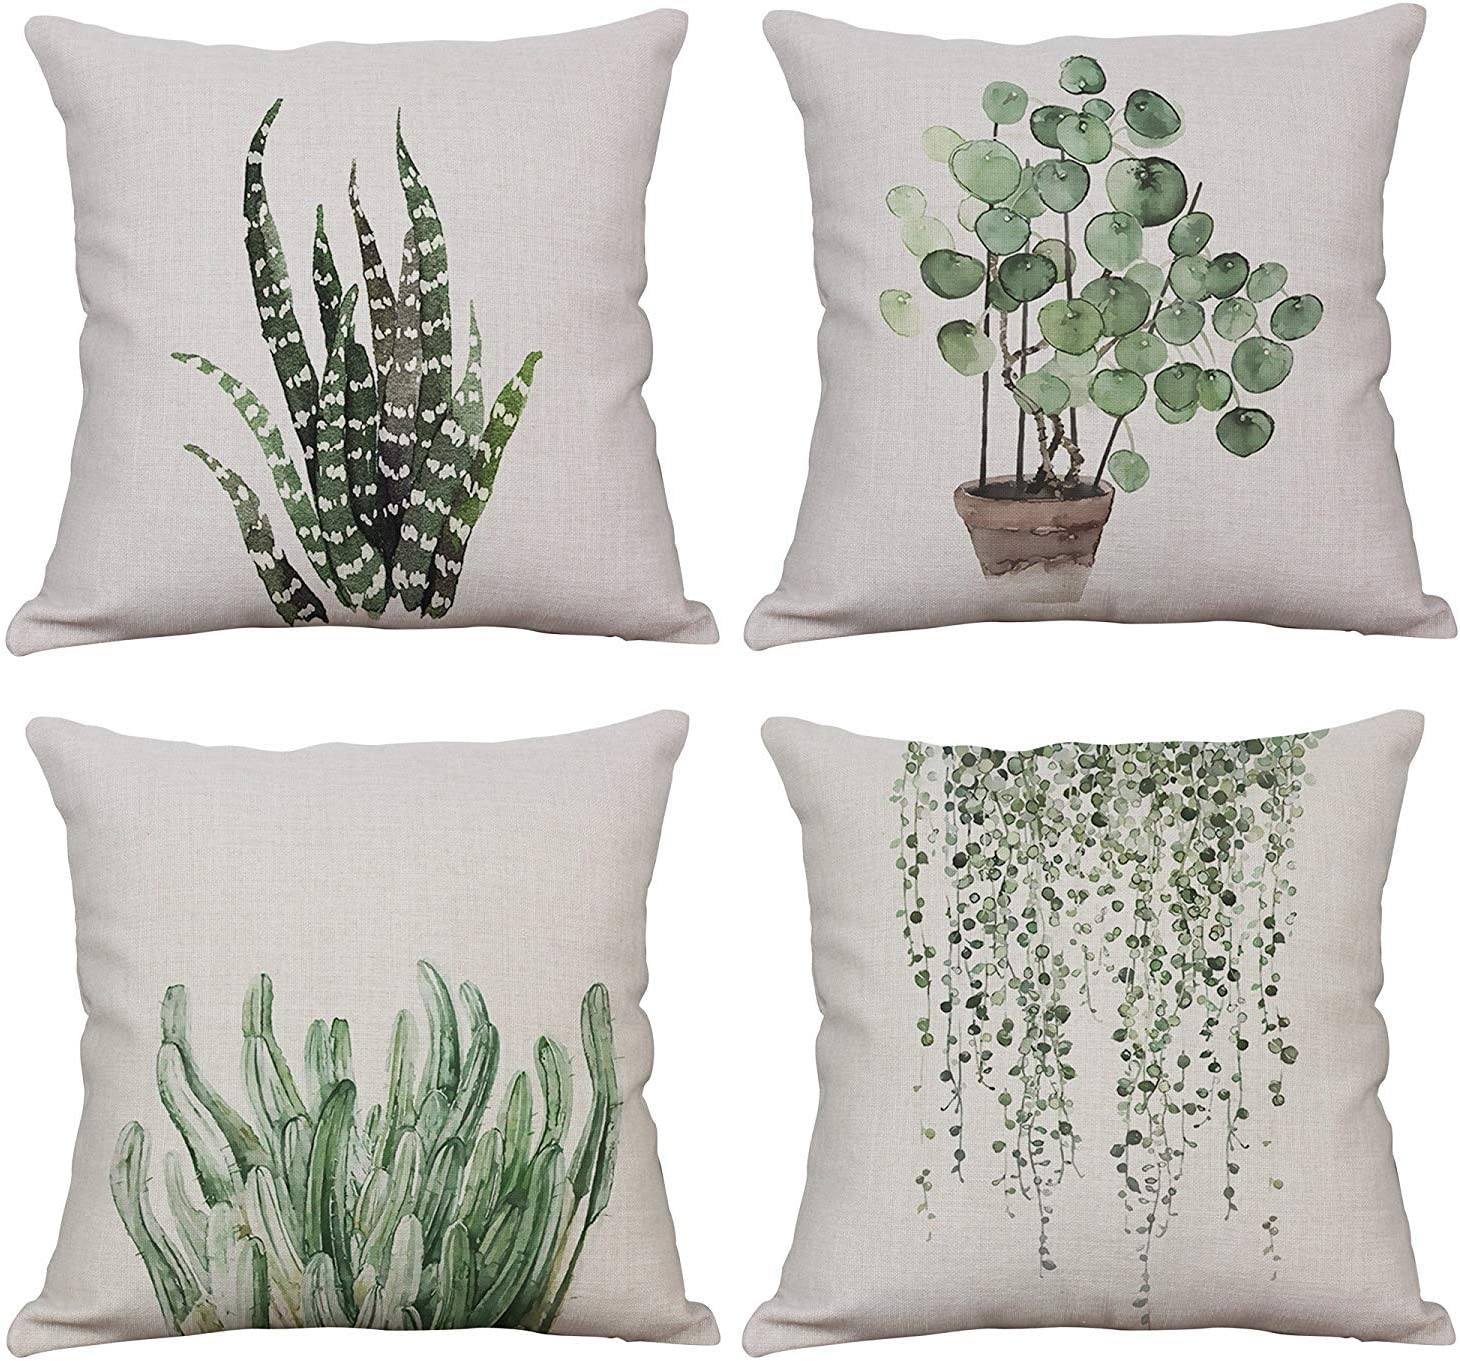 YeeJu Set of 4 Green Plant Throw Pillow Covers Decorative Cotton Linen Square Outdoor Cushion Cover Sofa Home Pillow Covers 12x12 Inch